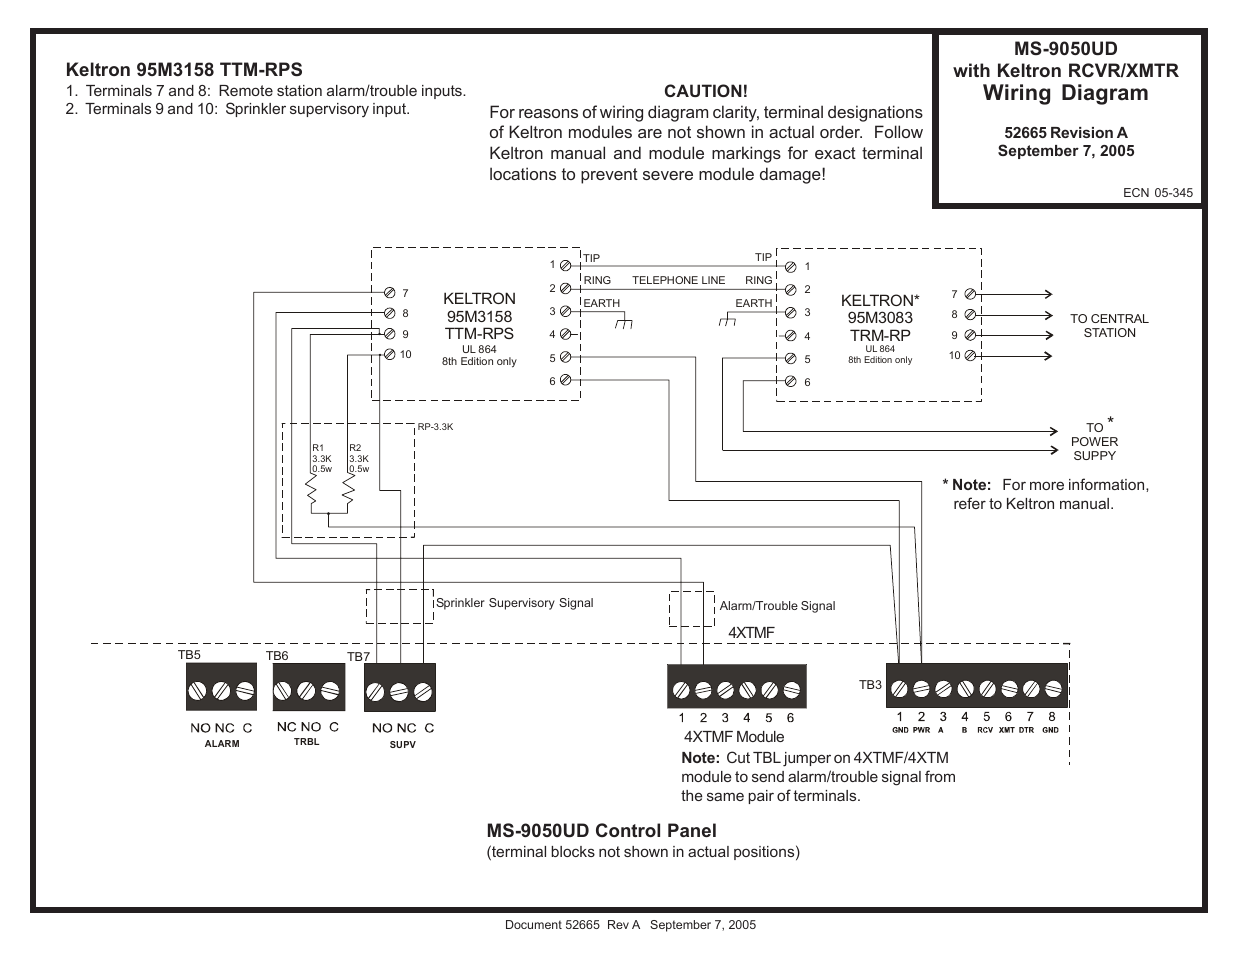 fire lite ms 9050ud with keltron transmitter receiver wiring diagram Fire Lite MS-9050UD at Ms 9050ud Wiring Diagram